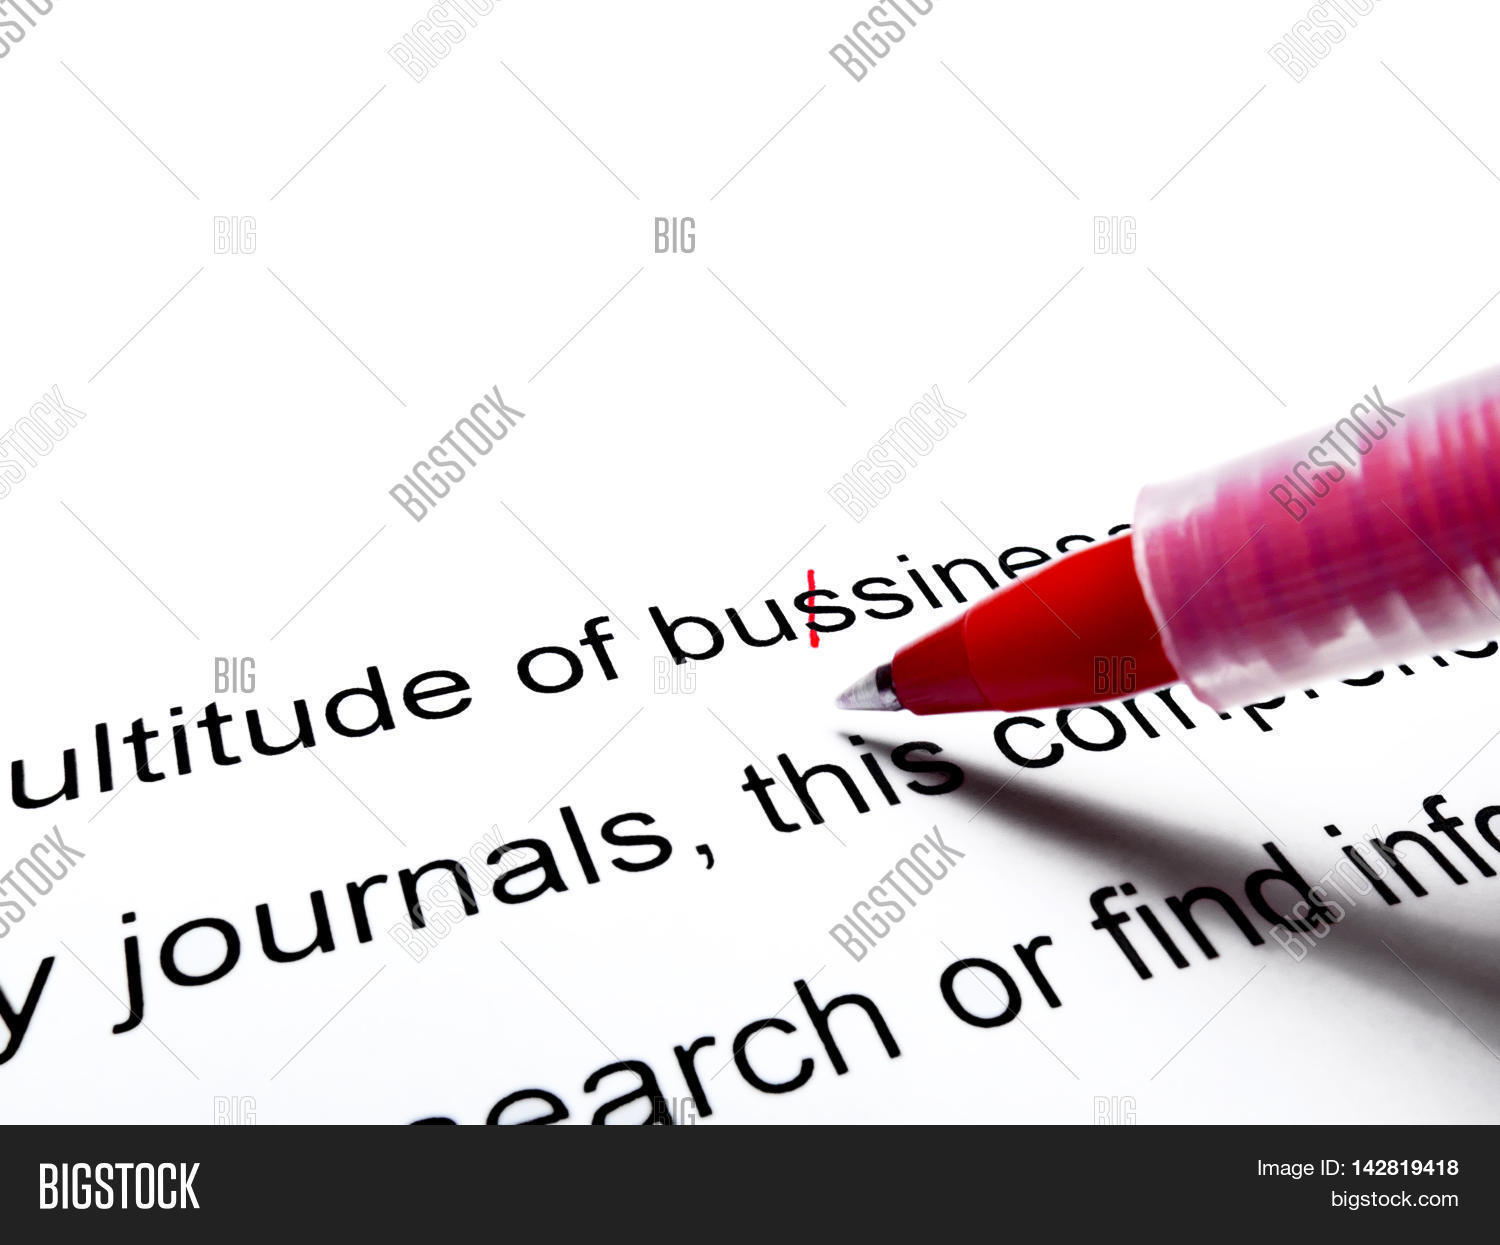 red,pen,correcting,proofread,english,text,proofreading,editor,edit,correction,proofreader,correct,editing,paper,closeup,document,color,writer,job,author,error,mark,nobody,work,horizontal,colour,service,write,secretary,check,mistake,transcription,writing,macro,hand,transcribing,transcribe,transcript,written,spelling,spell,teacher,school,schoolwork,marking,bussiness,business